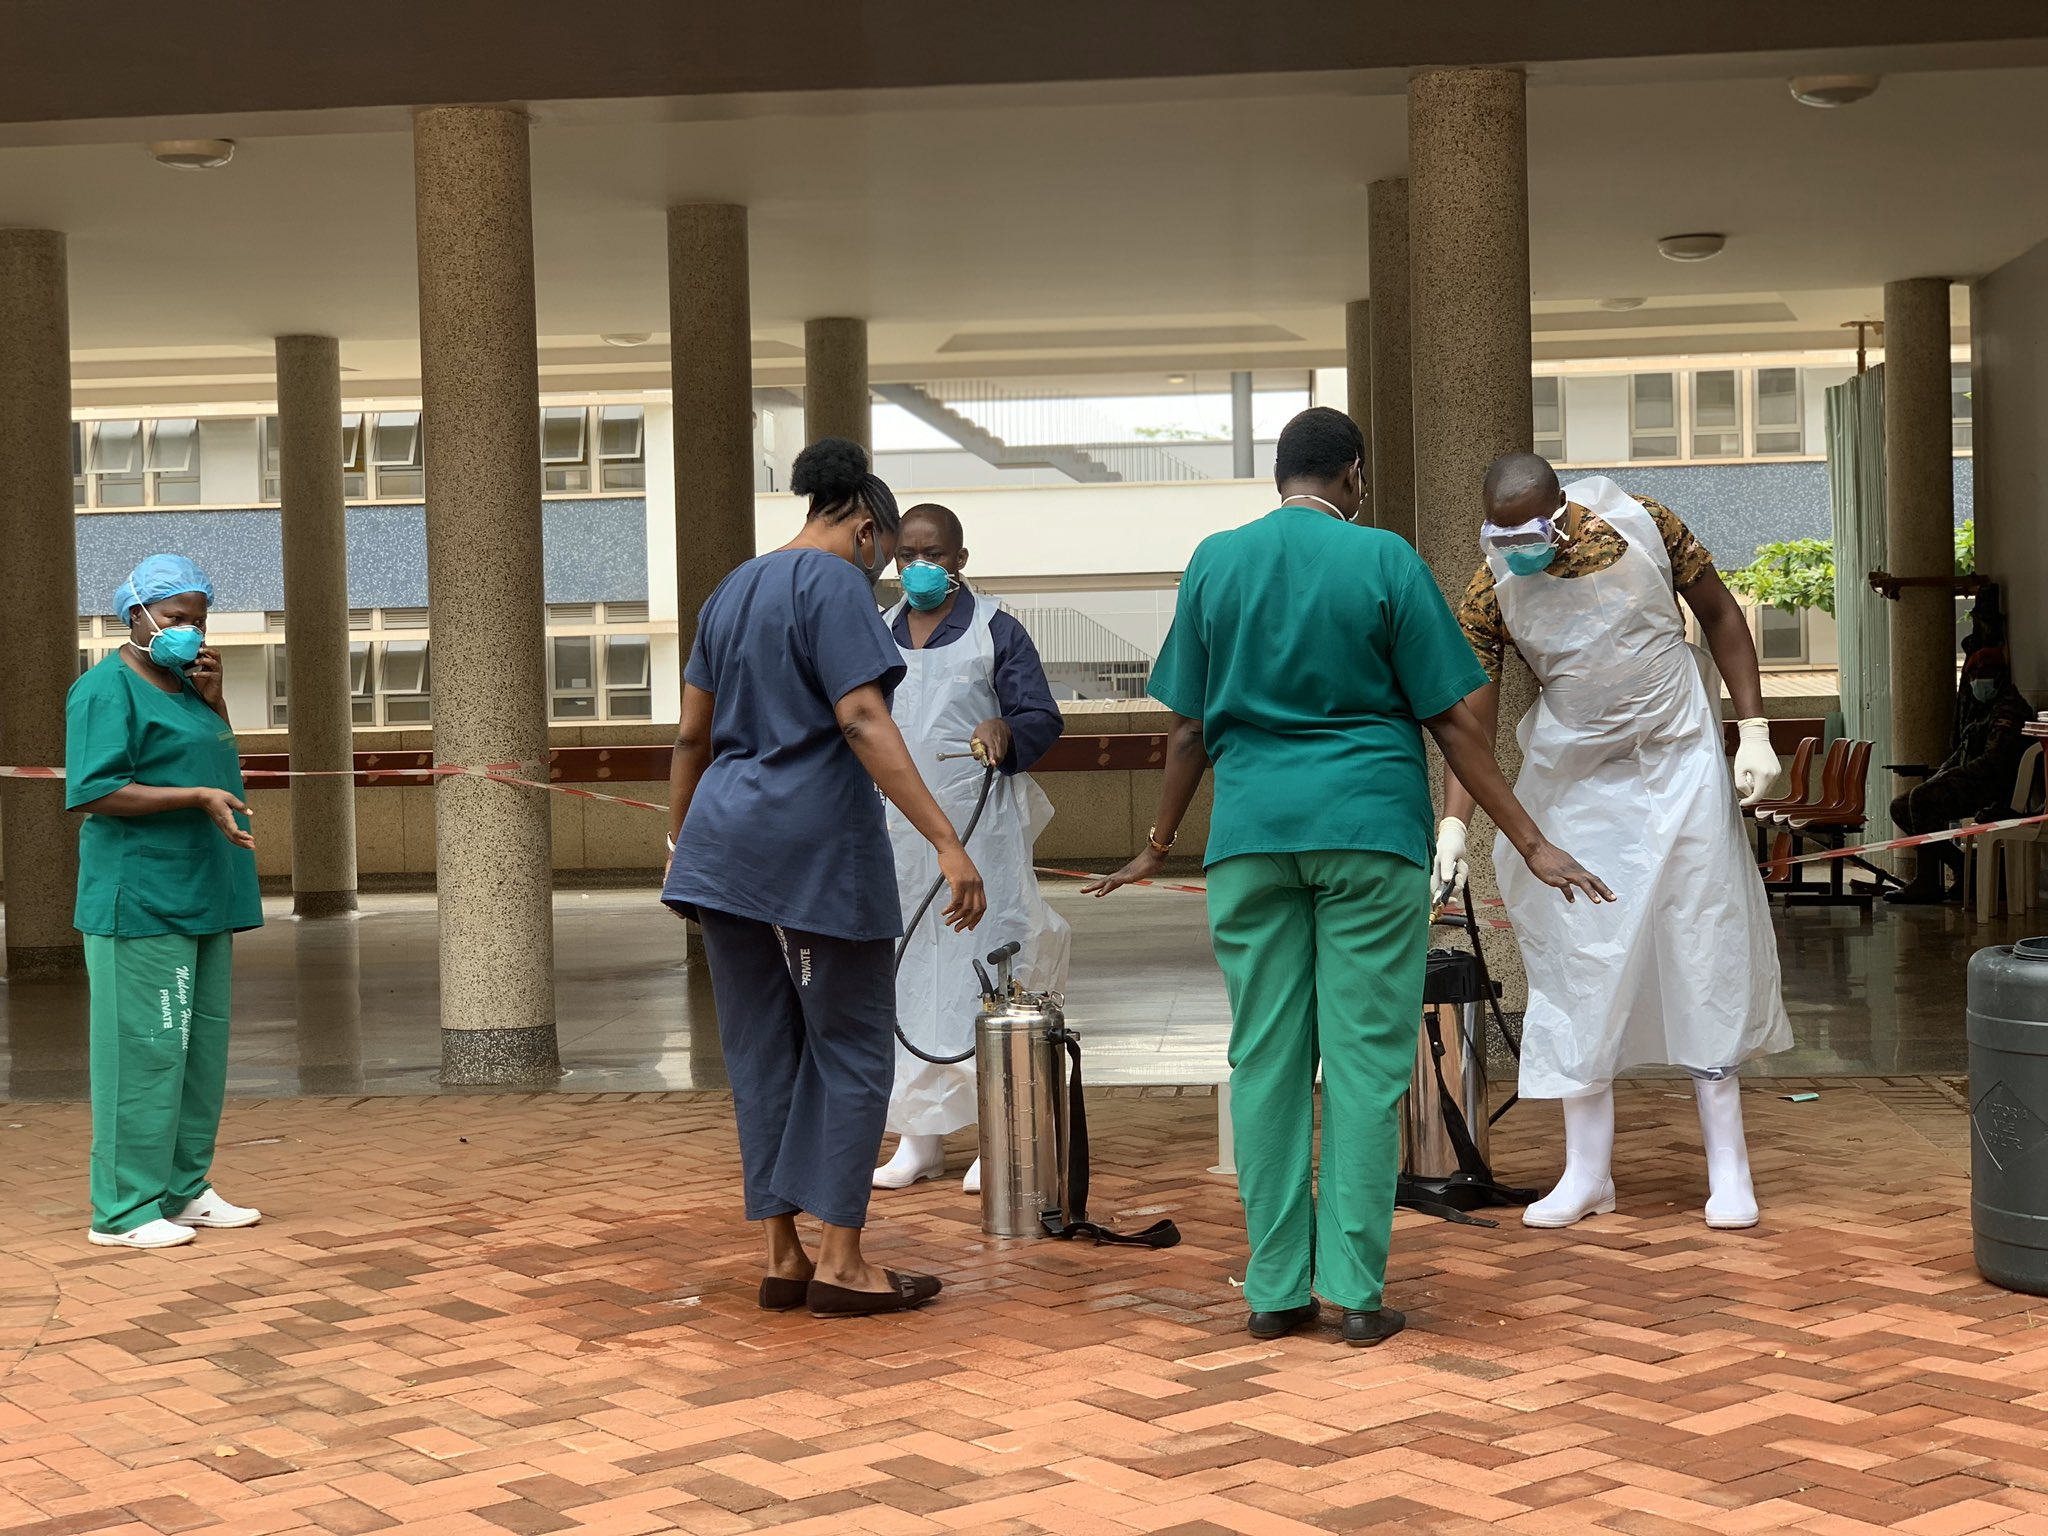 Health workers at Mulago Specialised National Hospital undergo disinfection upon leaving the COVID-19 isolation and treatment unit (PHOTO/PML Daily).